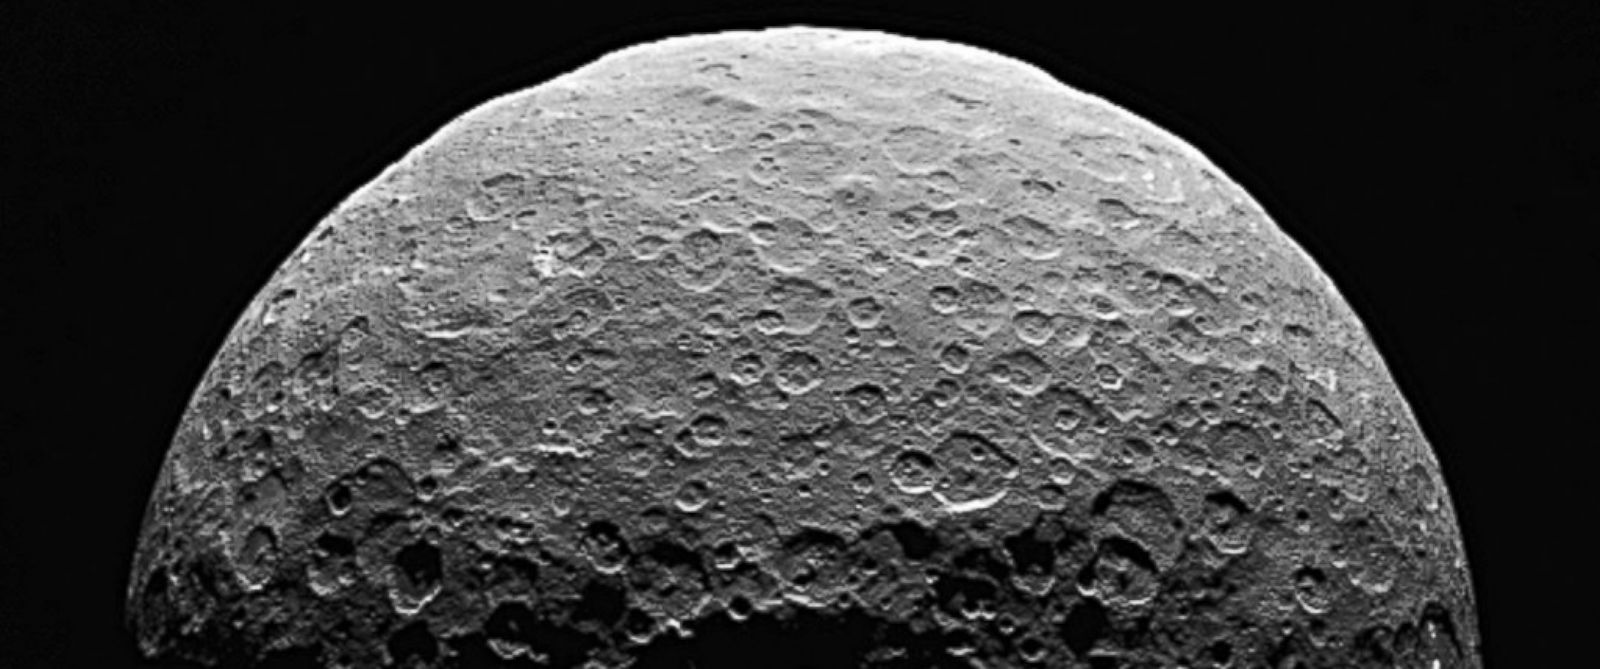 PHOTO: An image released by NASA shows the sunlit side of the dwarf planet Ceres as seen by NASAs Dawn spacecraft in April, 2015.